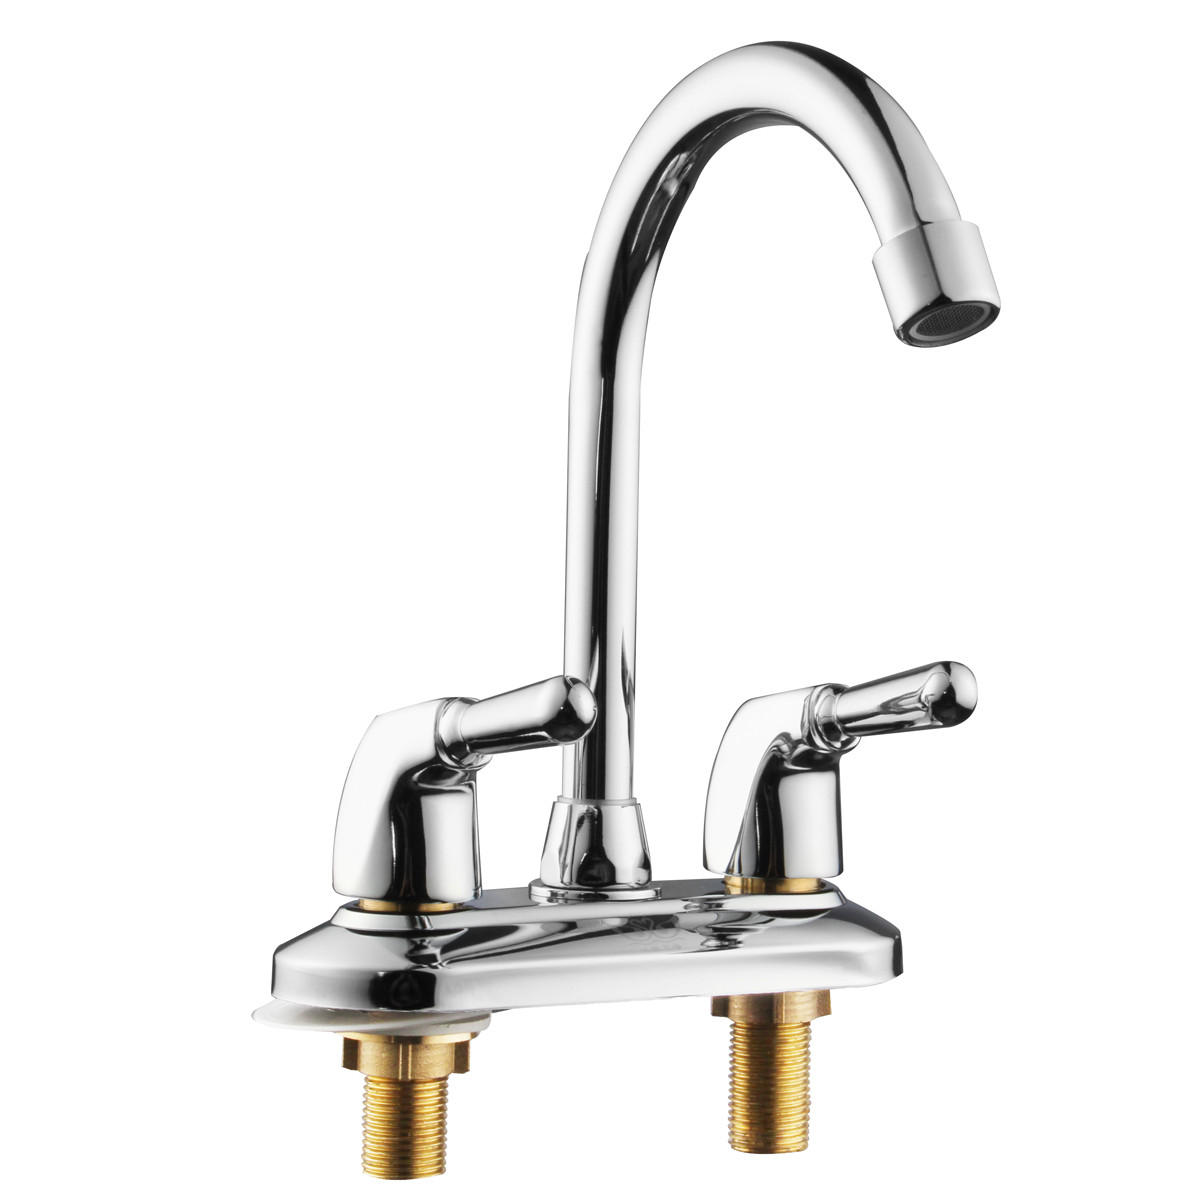 360° Rotation Kitchen Faucet Cold and Hot Water Mixer Tap Double Handle Basin Faucet Double Hole Water Faucet